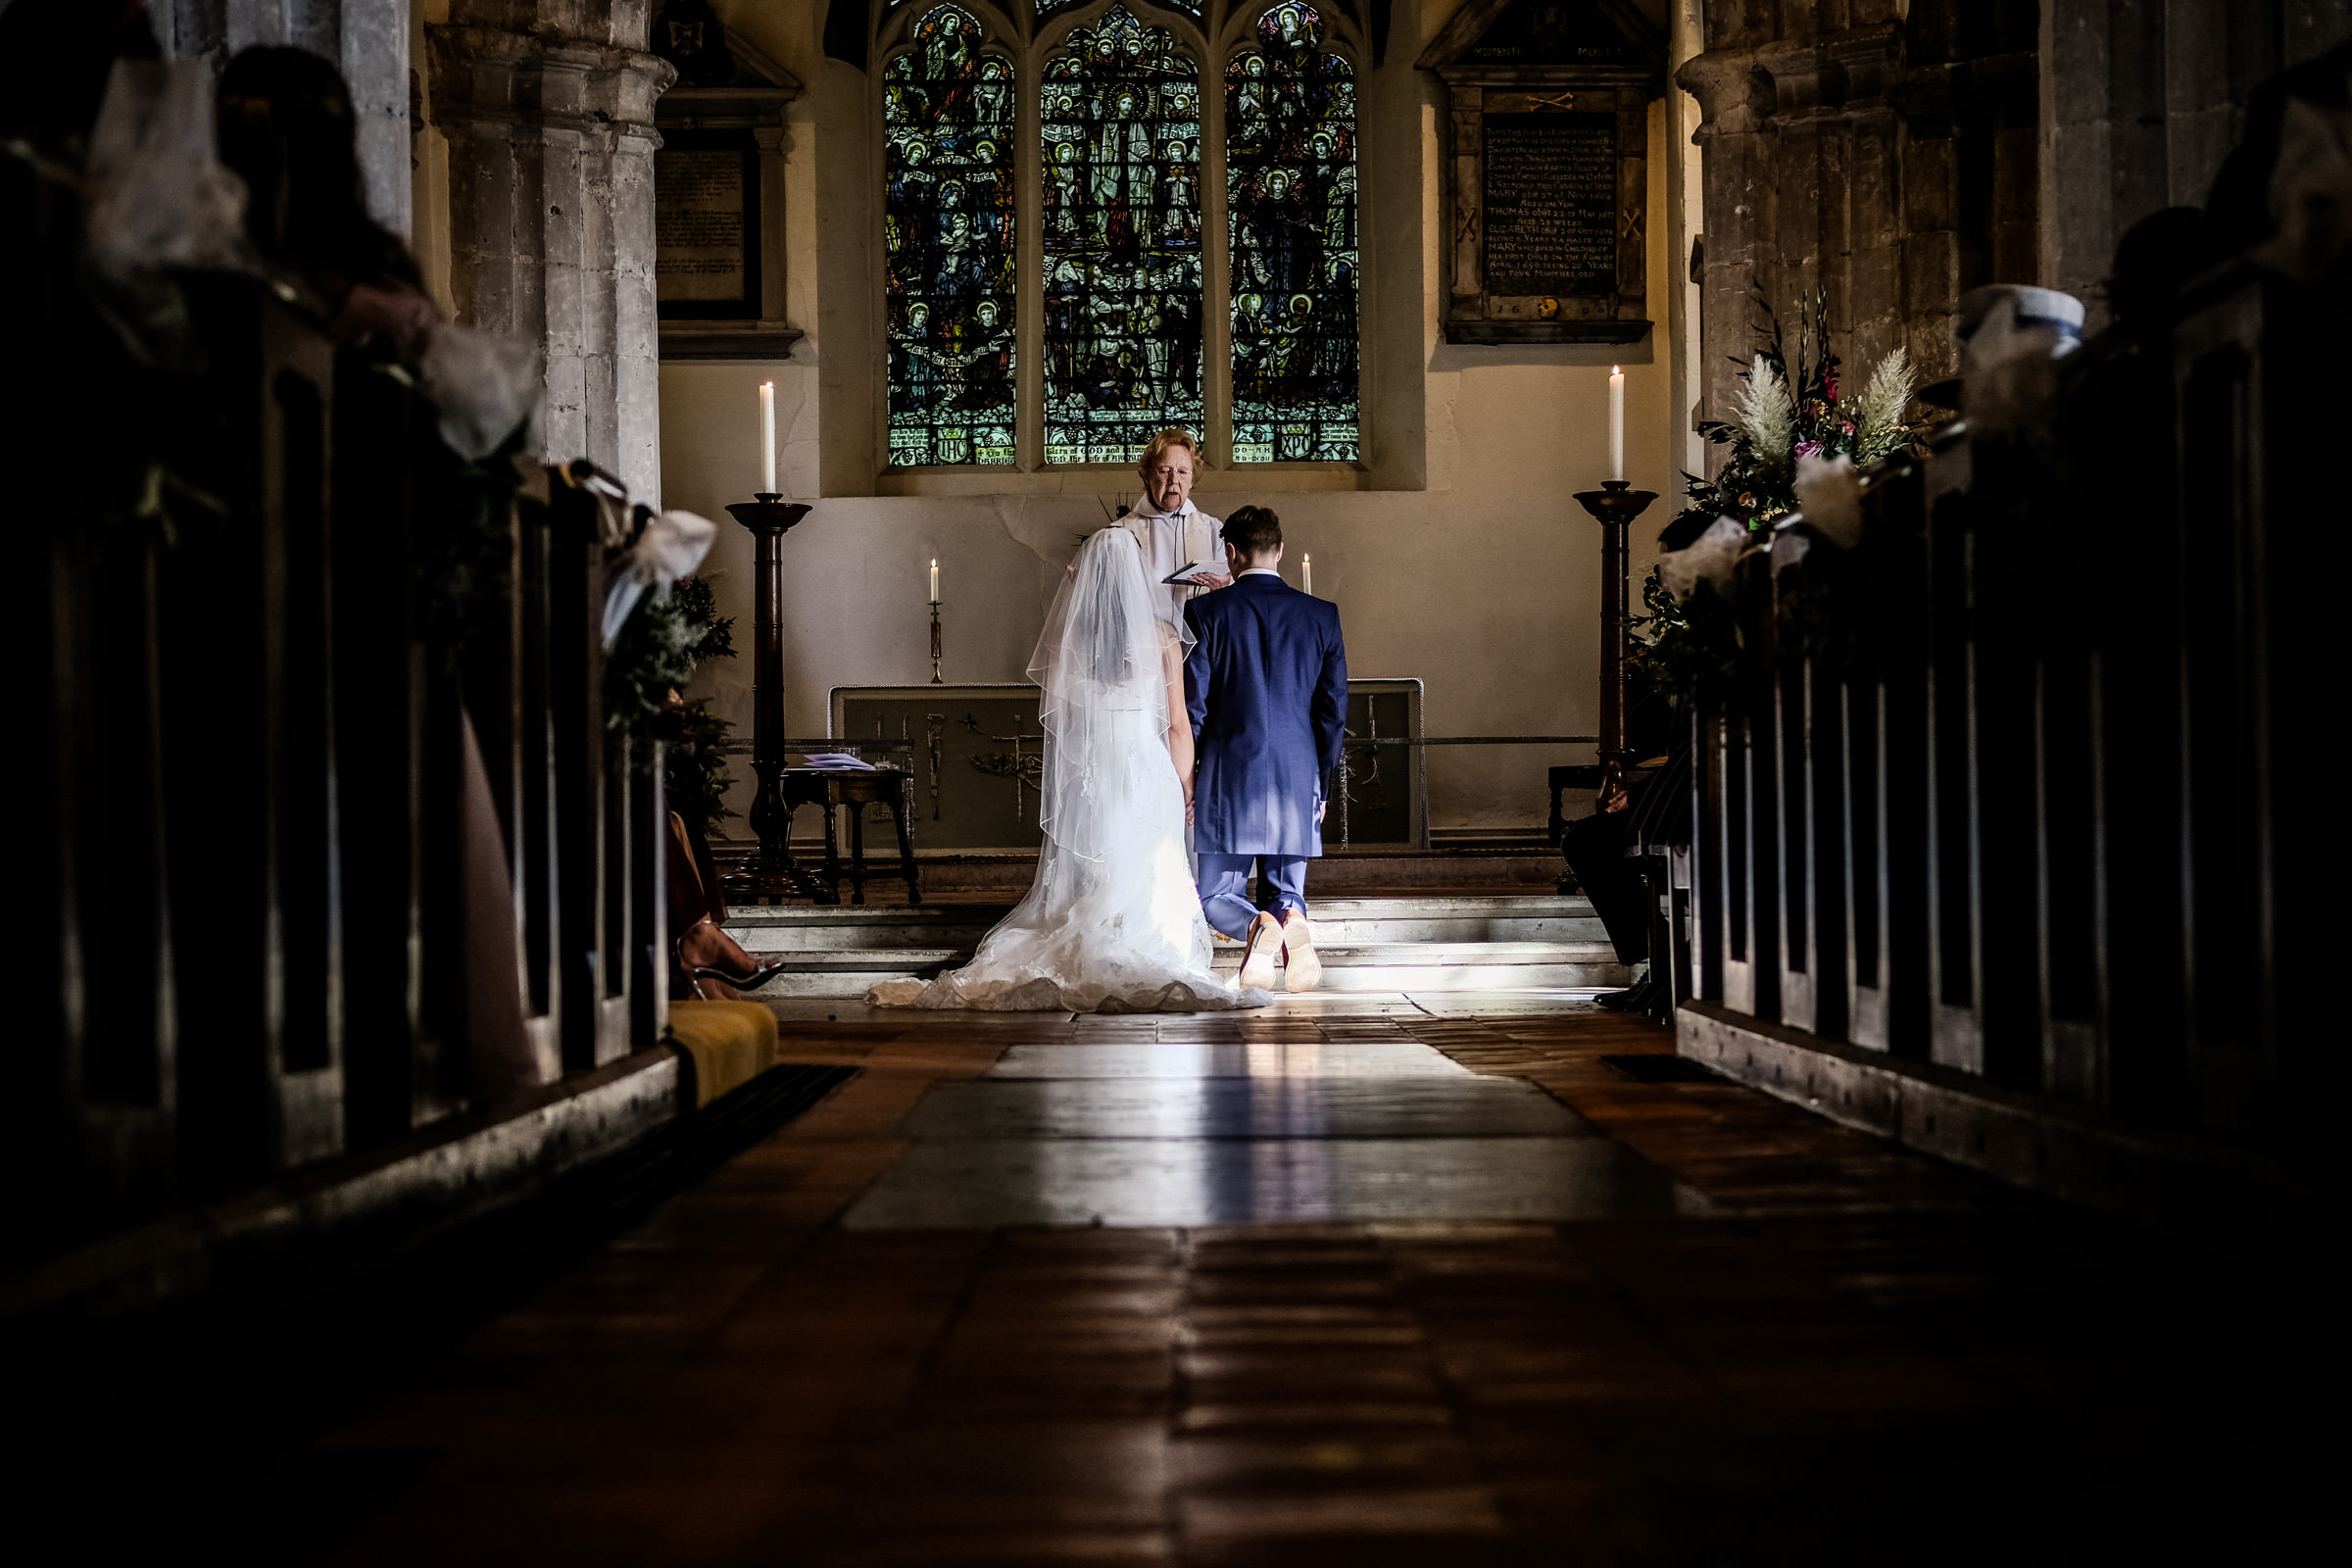 Talbot+Inn+Wedding+Photos+Surrey+011.jpg